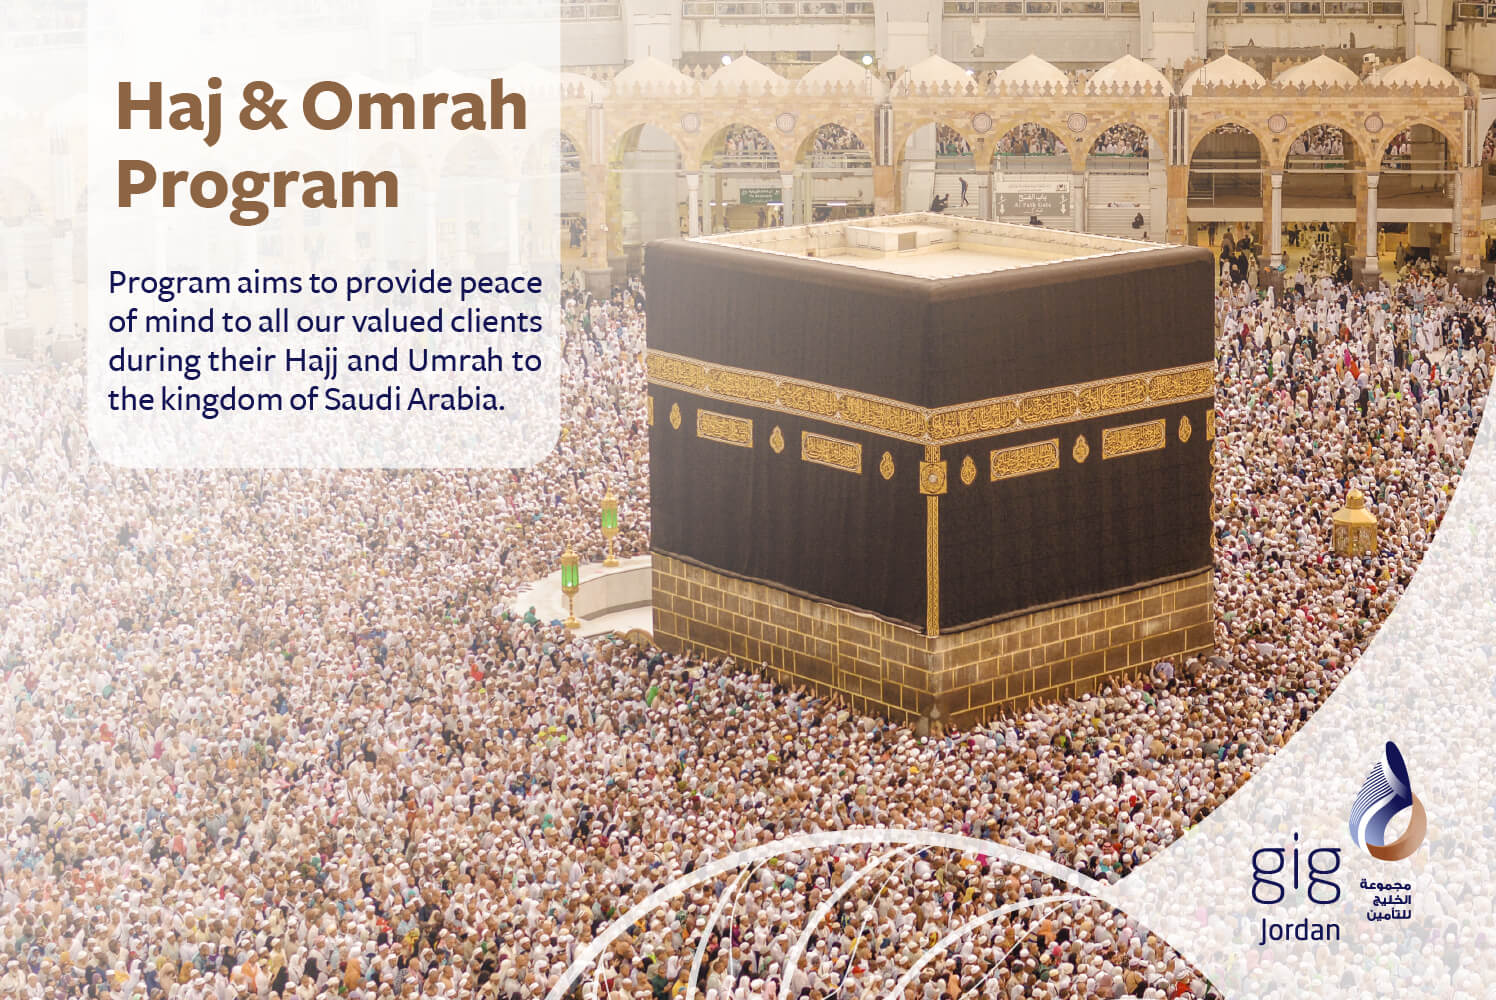 Hajj and Umrah program